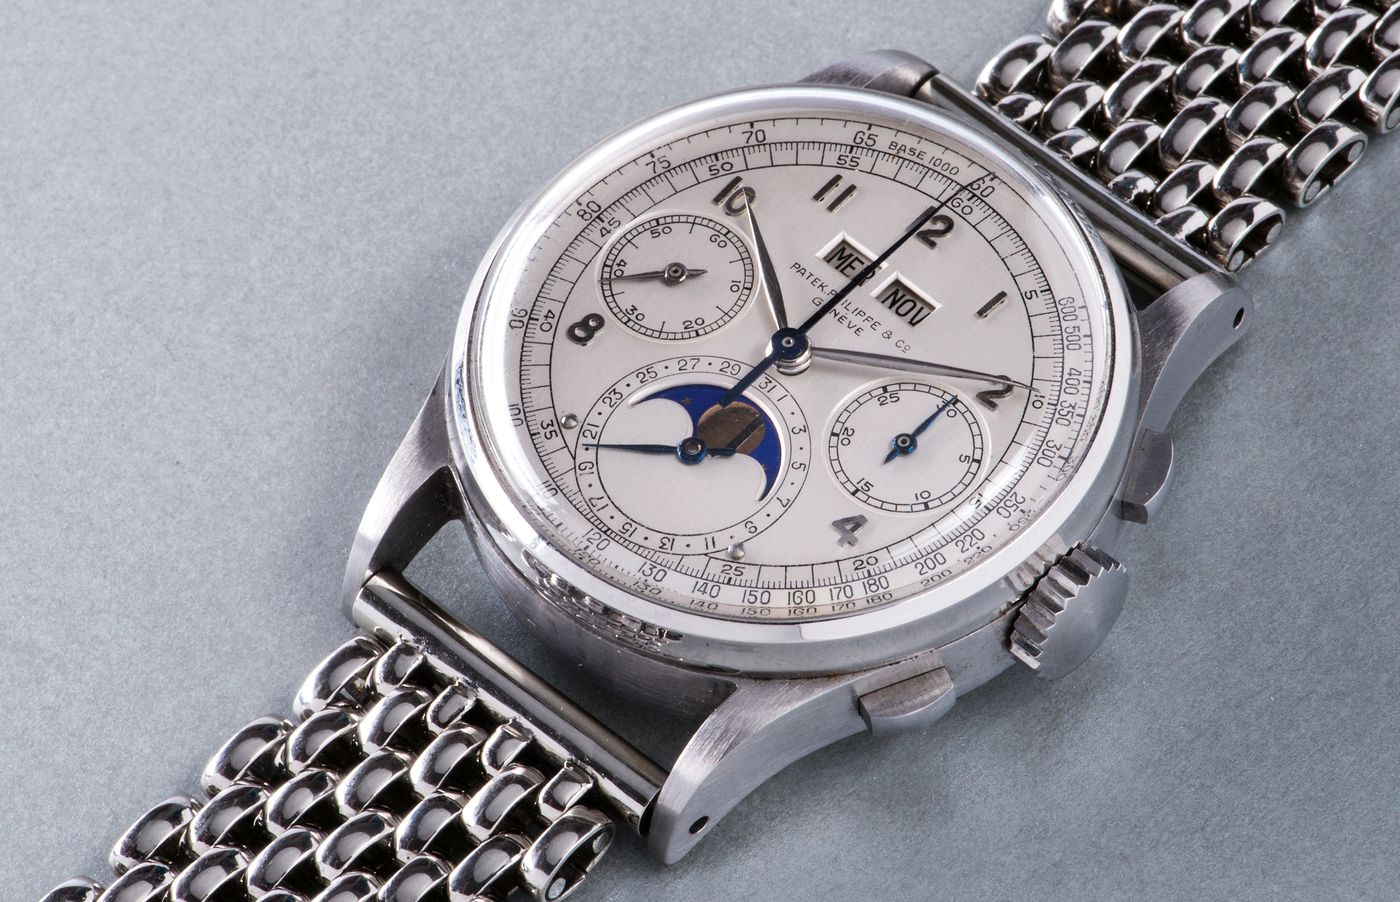 319319322c2 PHILLIPS : The Patek Philippe Ref. 1518 Trilogy